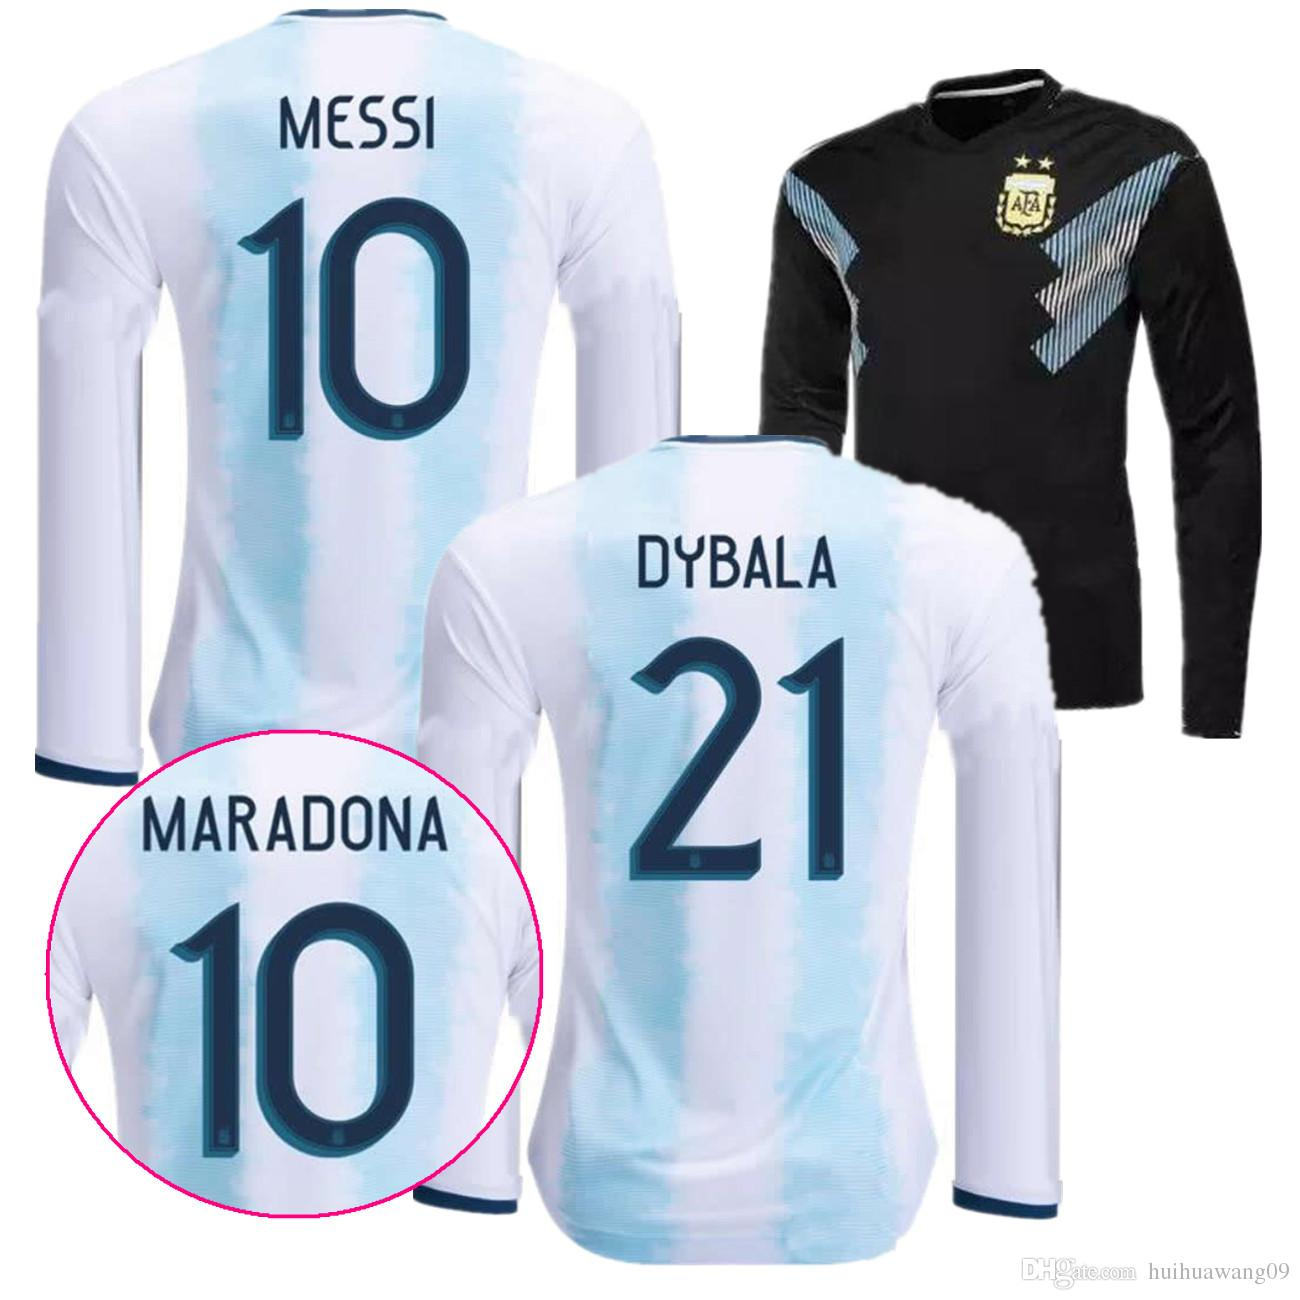 874a8bad69a 2019 2019 ARGENTINA MESSI 10 Long Sleeve LS SOCCER JERSEYS HOME Copa  AMERICA CUP AWAY ICARDI KUN AGUERO JERSEY 2020 FOOTBALL OFFICIAL FONT SHIRTS  From ...